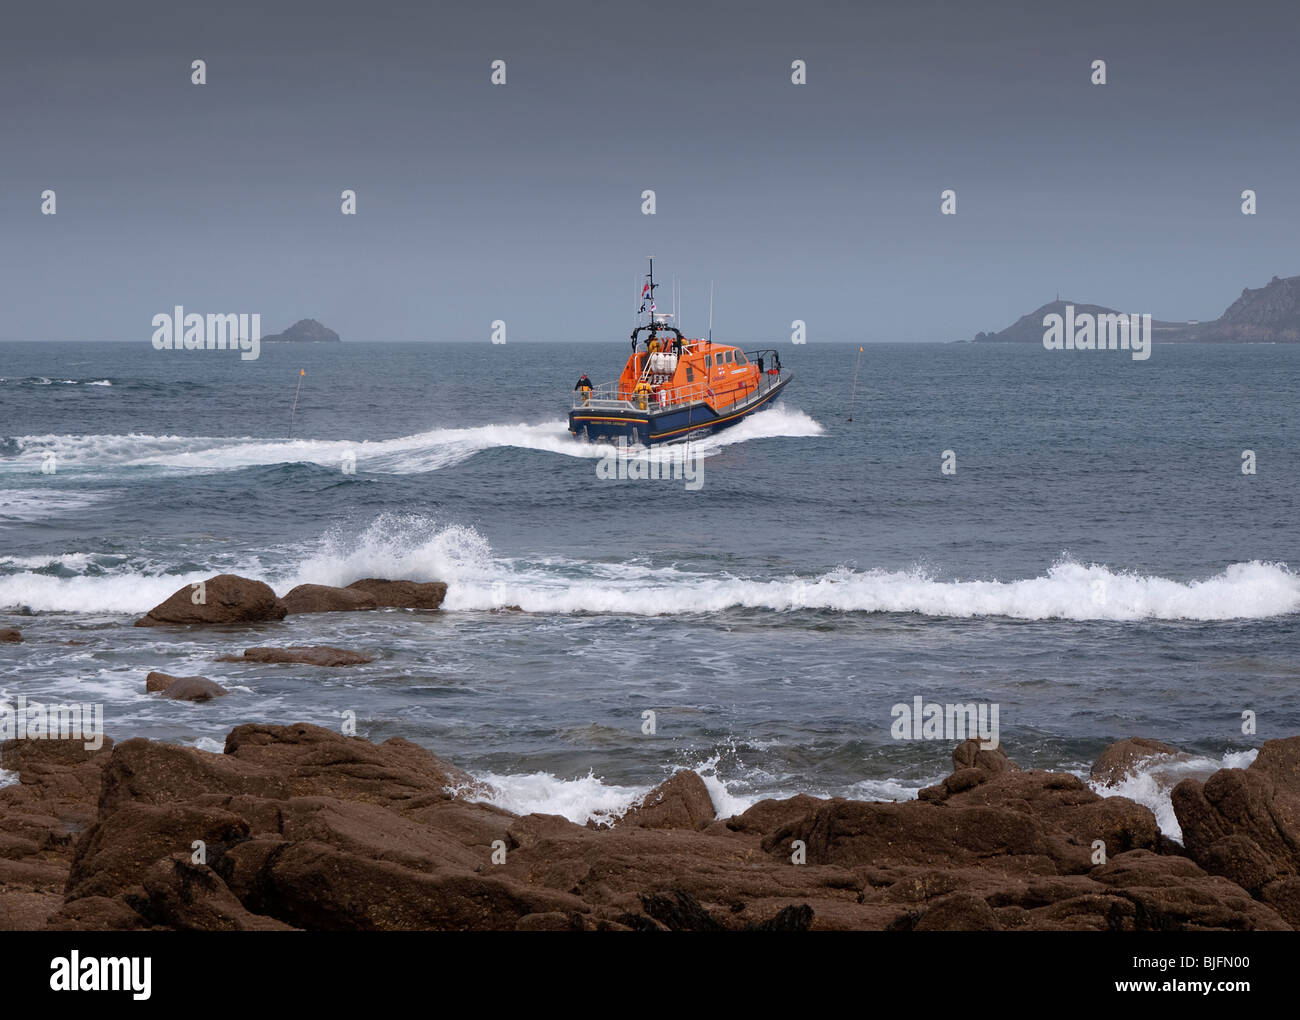 Lifeboat launch at Sennen Cove Cornwall England - Stock Image